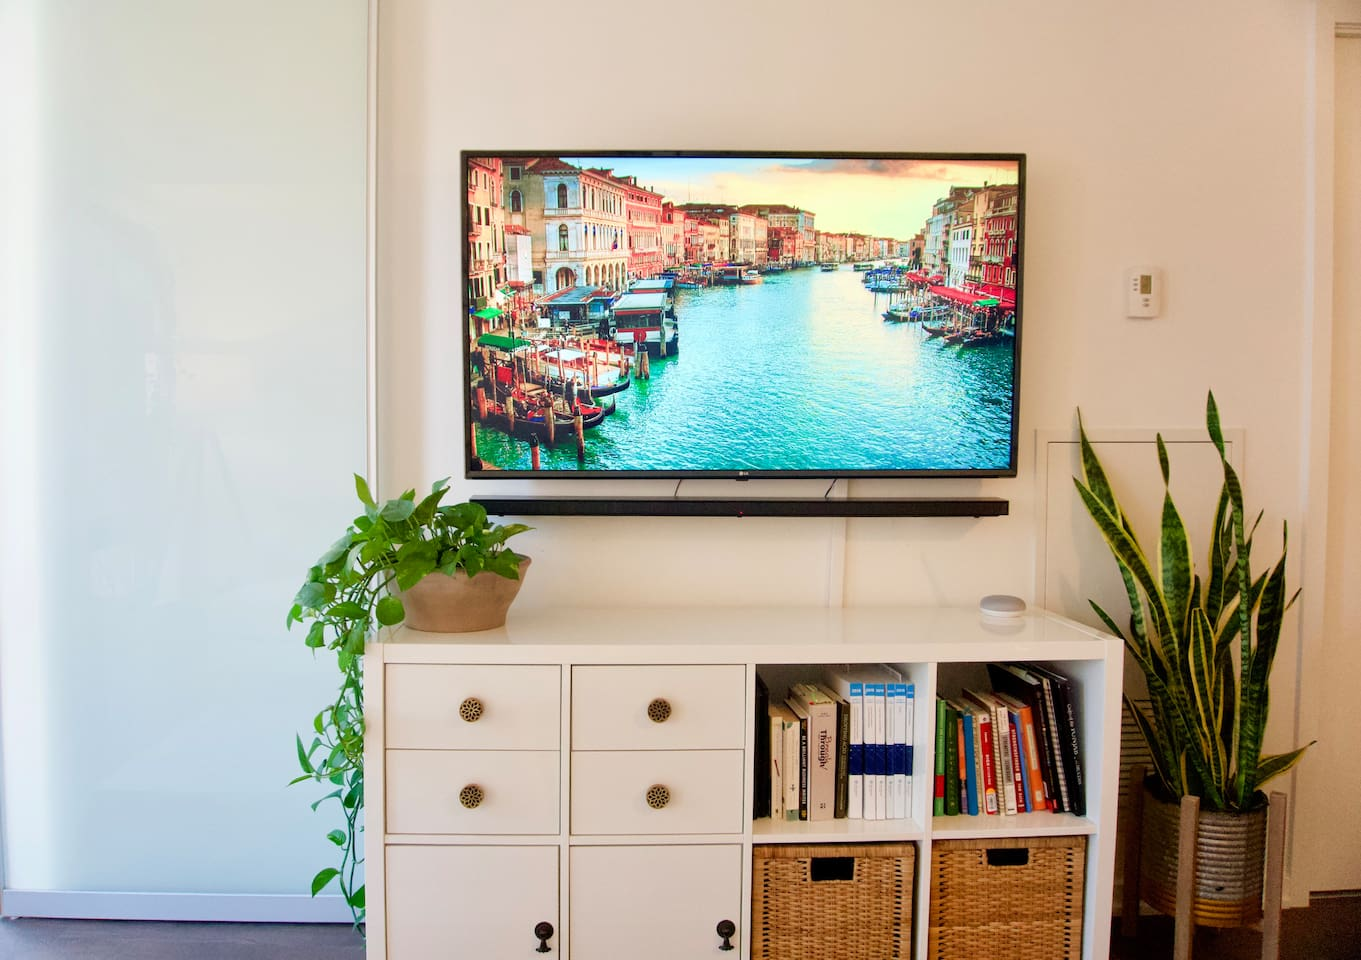 """Enjoy 200+ channels on Bell tv, Crave, and Netflix from this 55"""" 4k tv. Or play music using Google Home mini. Along with ultra-high-speed internet."""